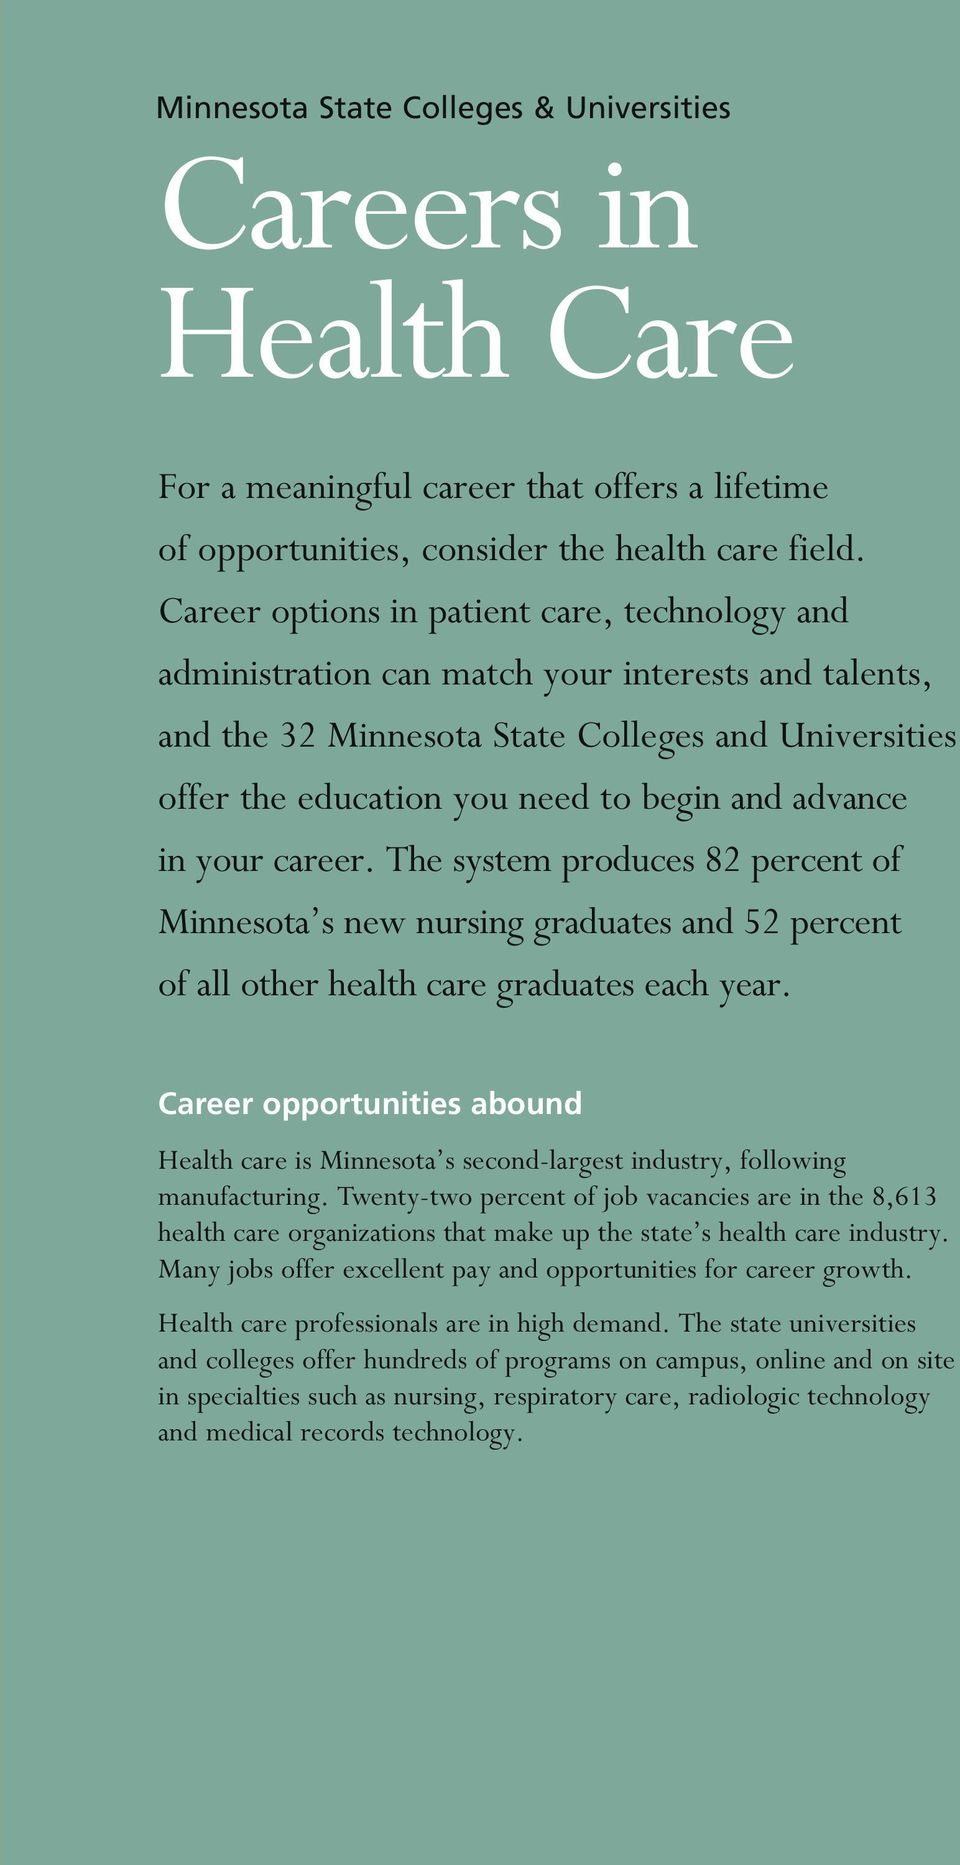 advance in your career. the system produces 82 percent of Minnesota s new nursing graduates and 52 percent of all other health care graduates each year.